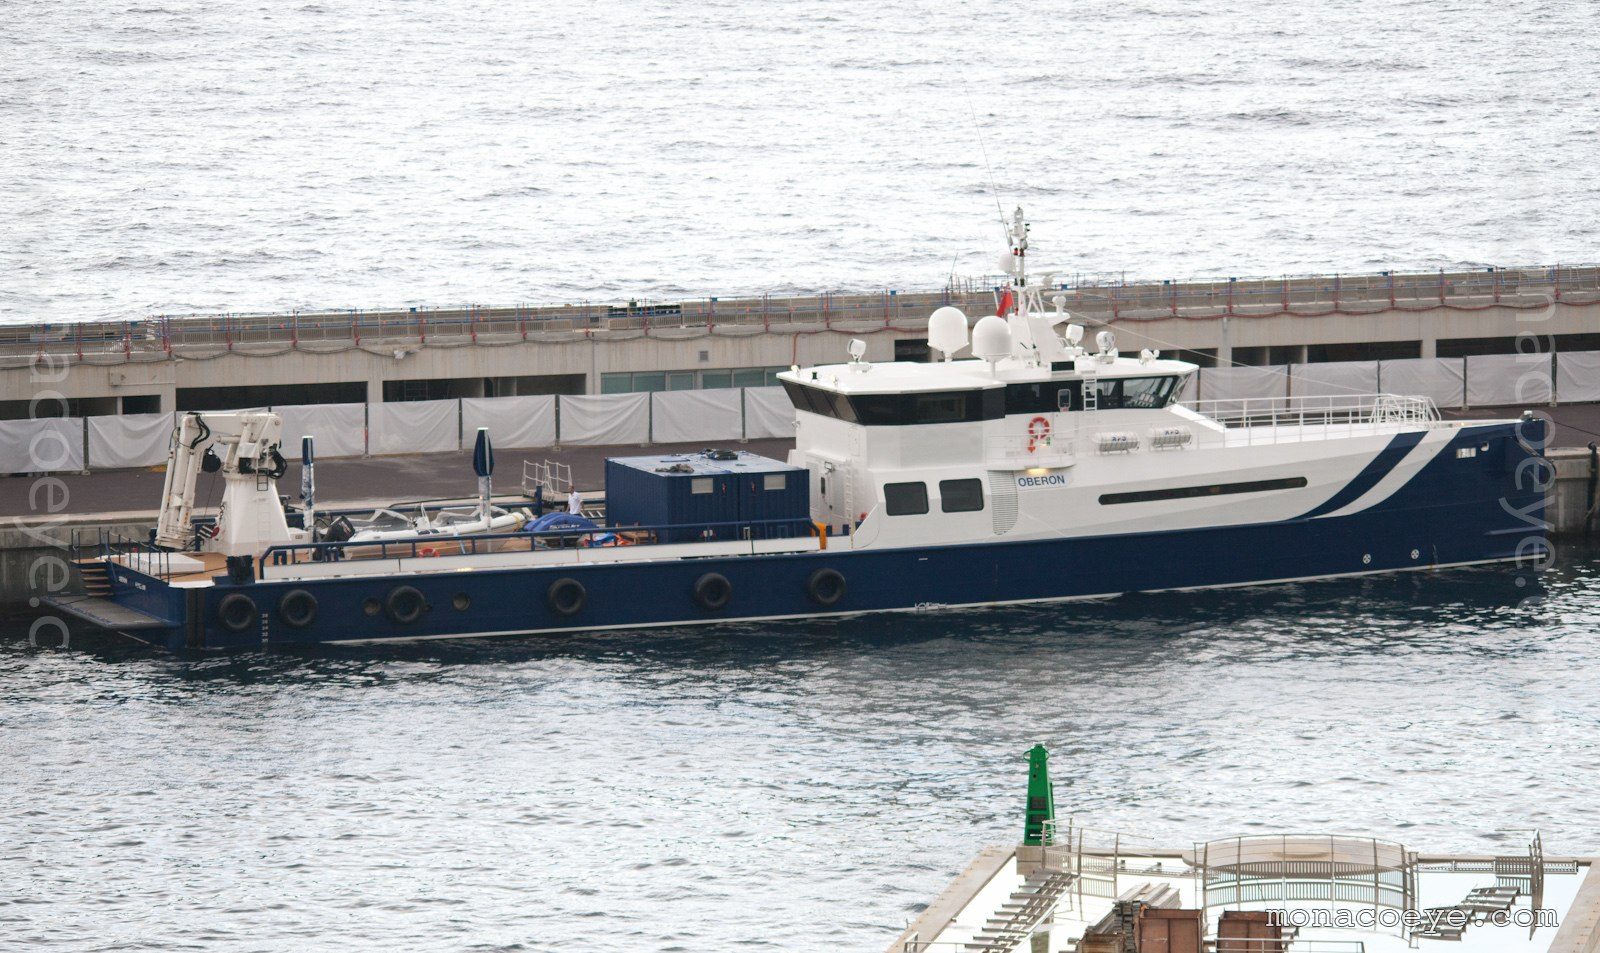 Oberon Sea Axe. Built by Damen, marketed by Amels, 2010, 51 metres, purpose-built yacht supply vessel